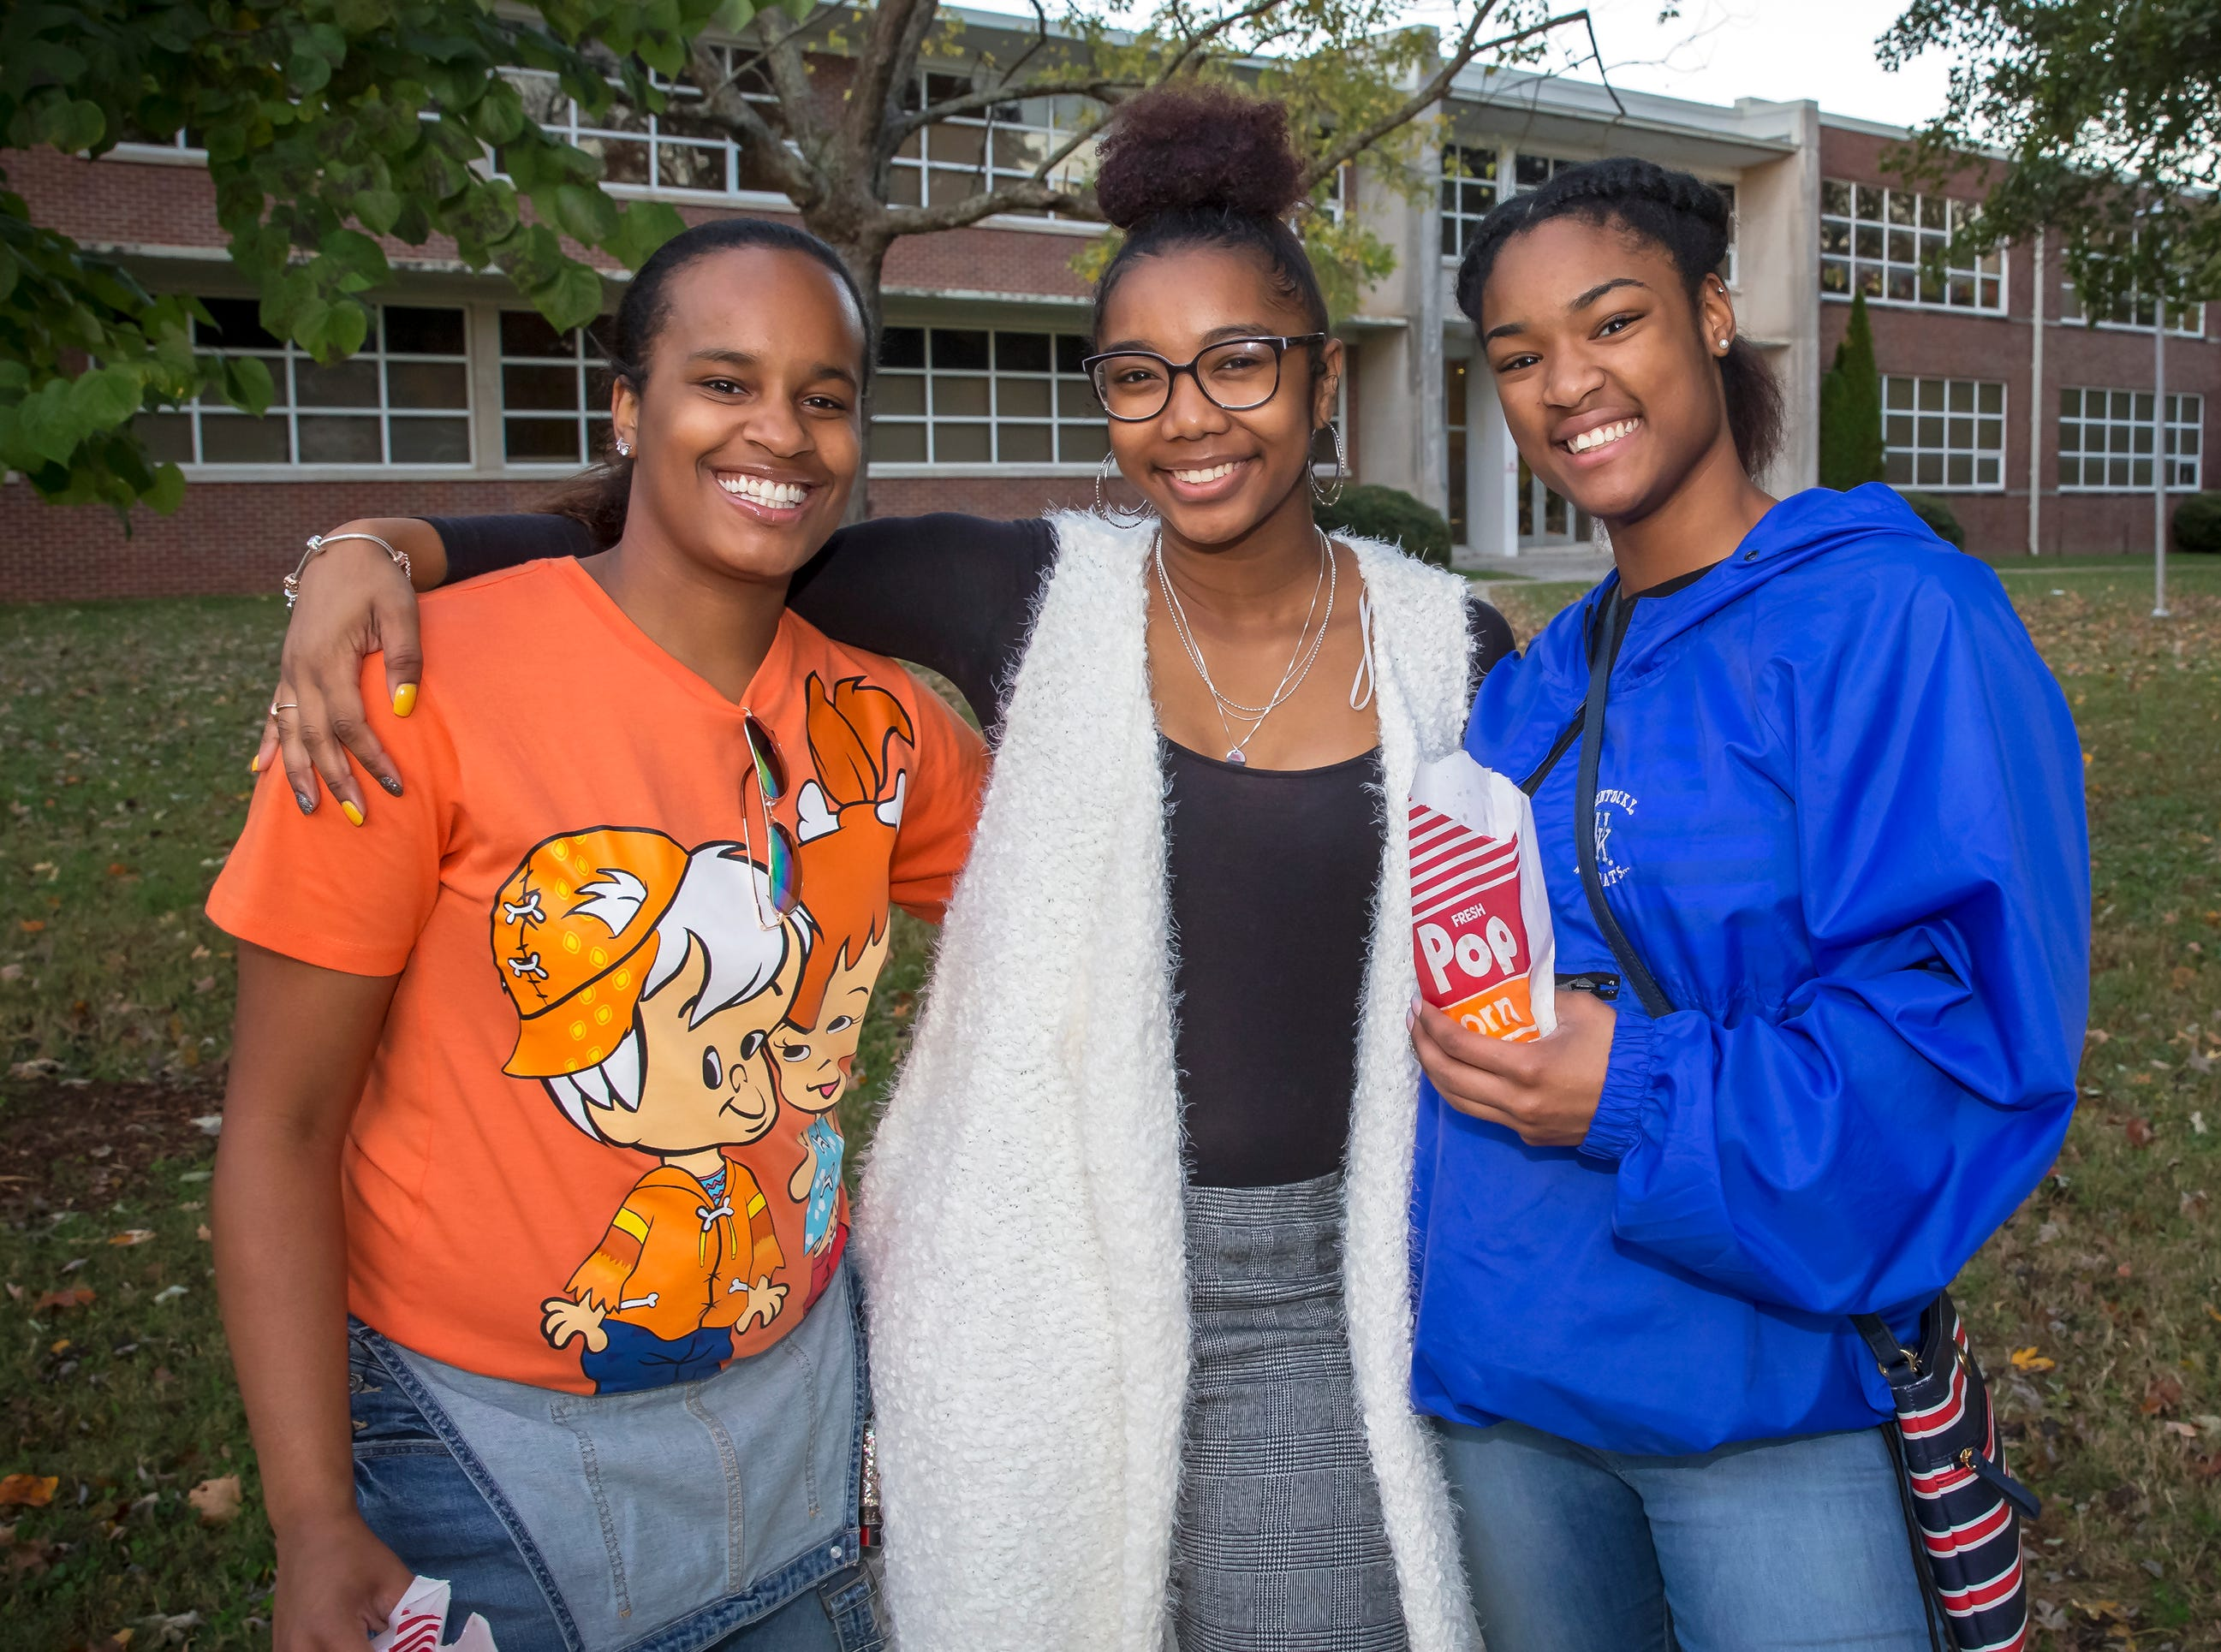 Destini Broadnax, Terica Black and Khaya Northcross at MTSU's 'Party at the Polls' #VoteTogether election-day event held at Central Magnet School.